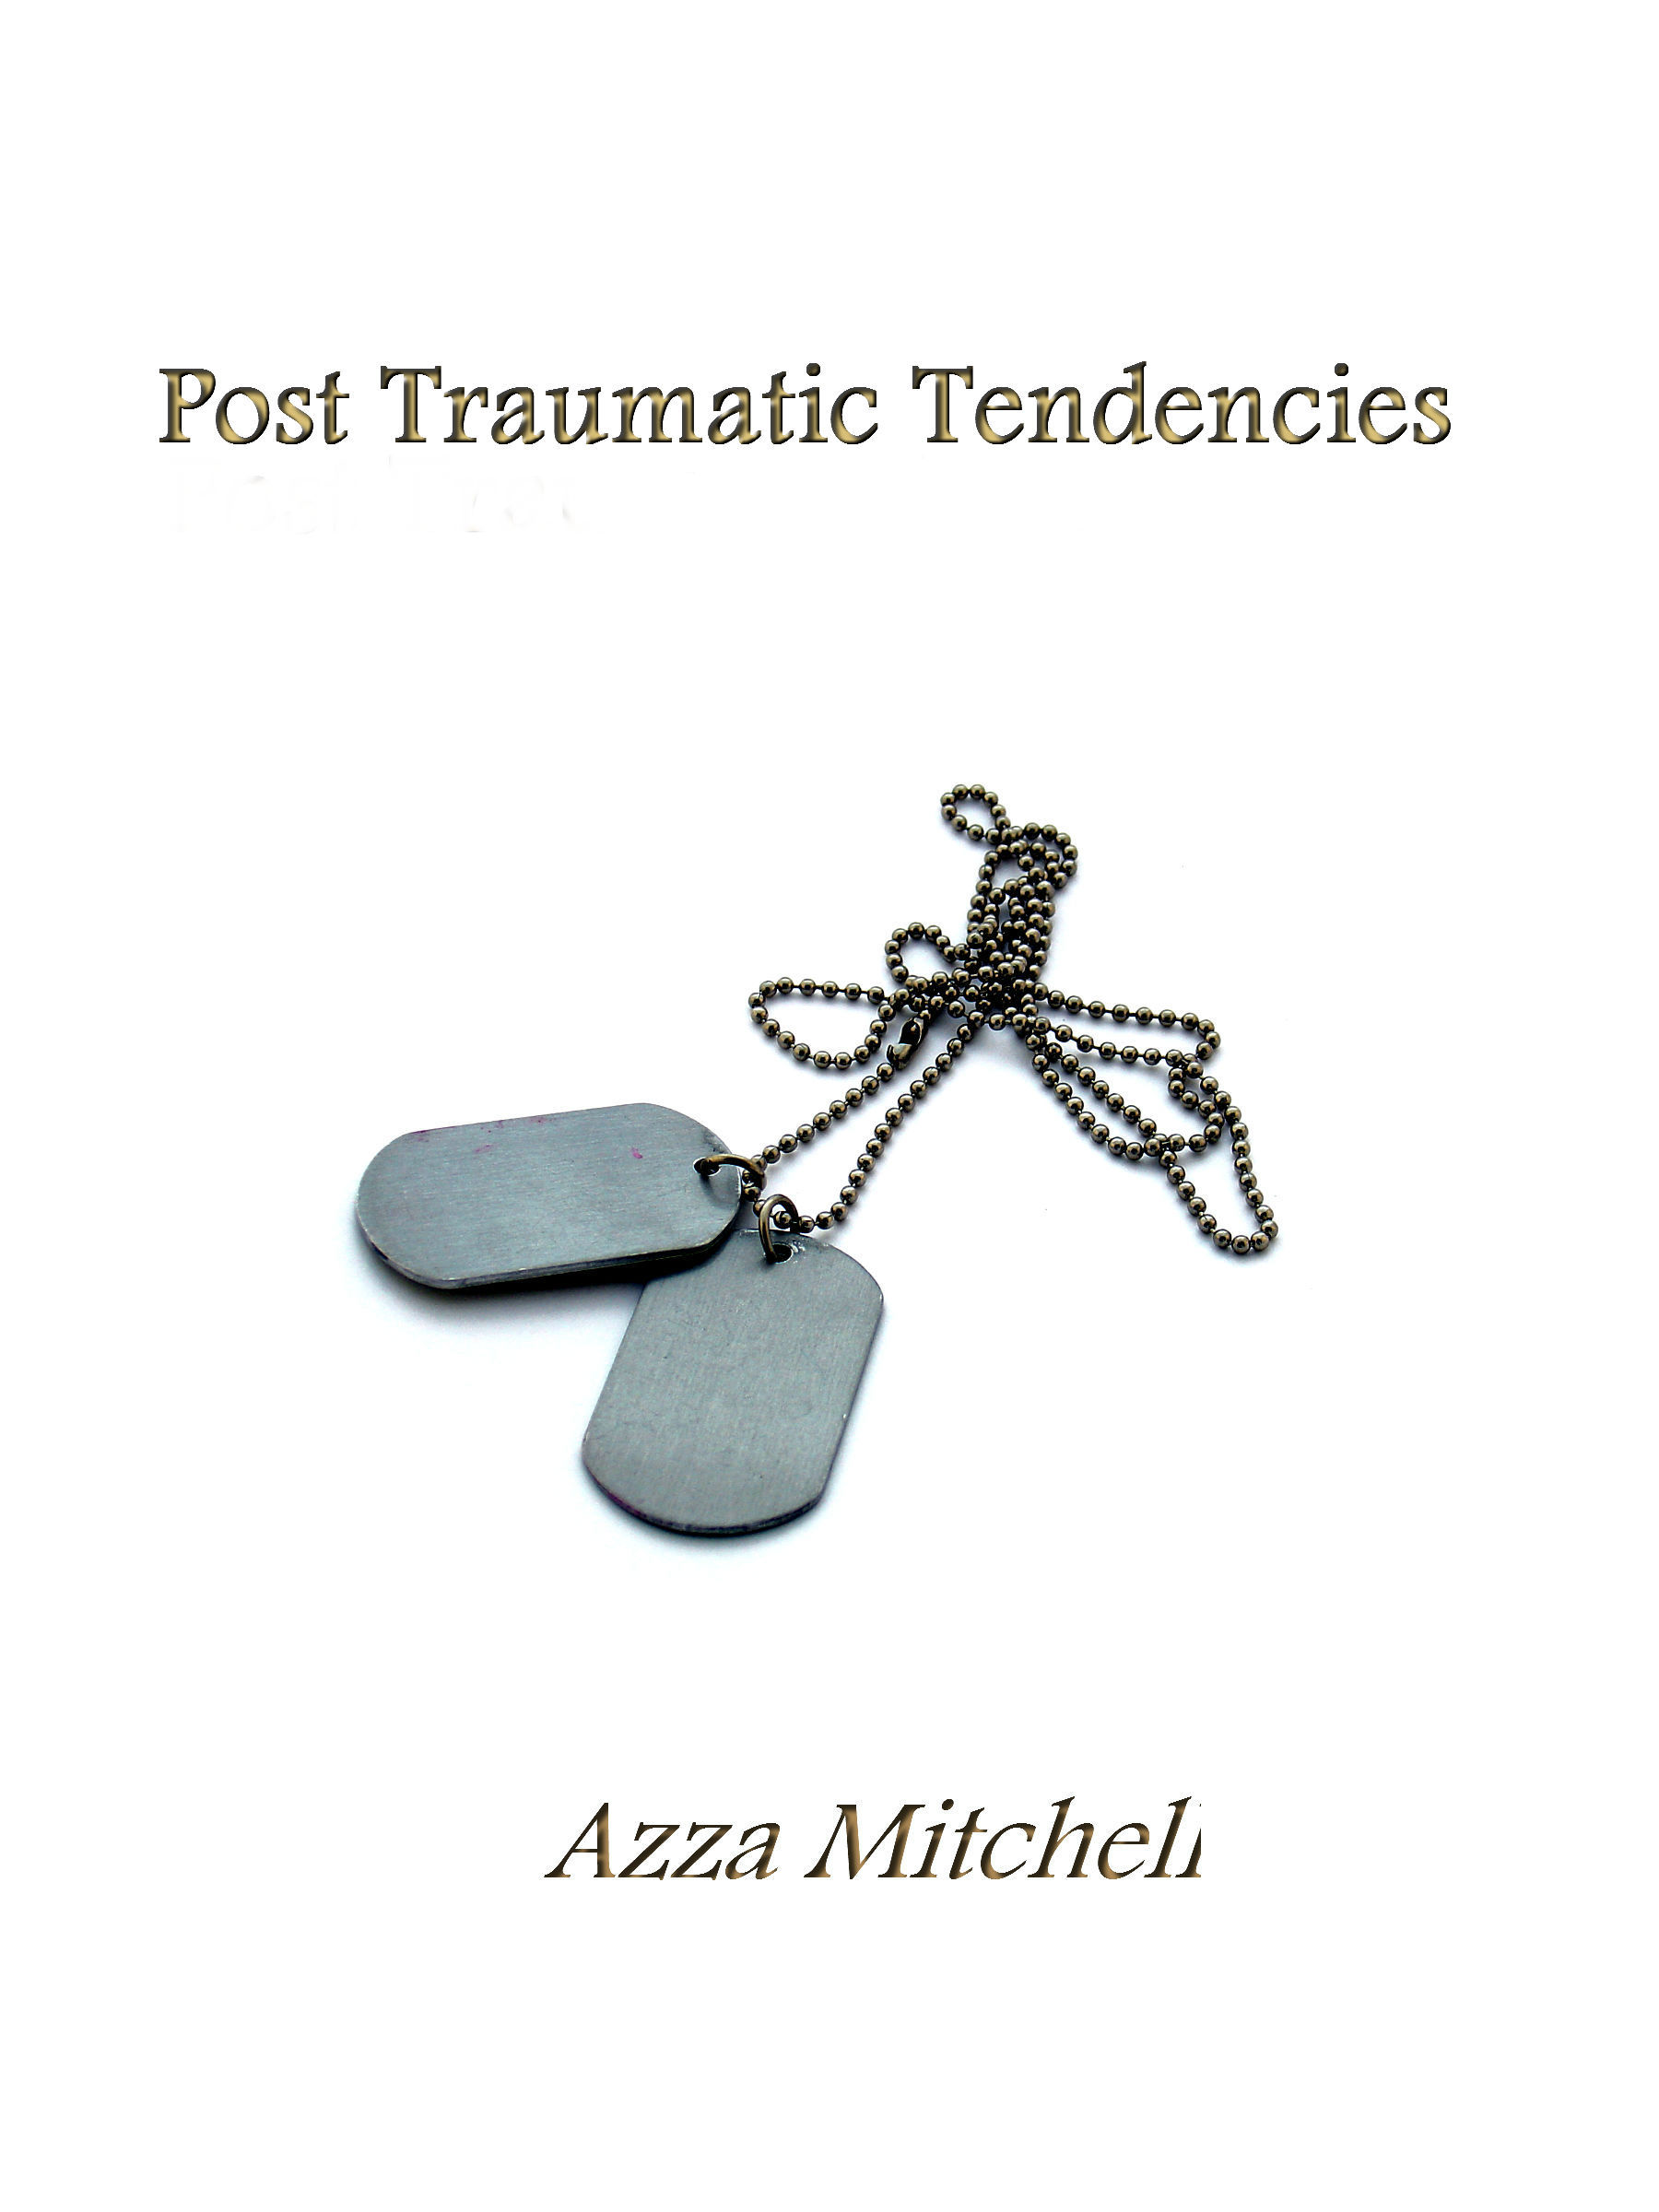 Post Traumatic Tendencies (m/m fiction)